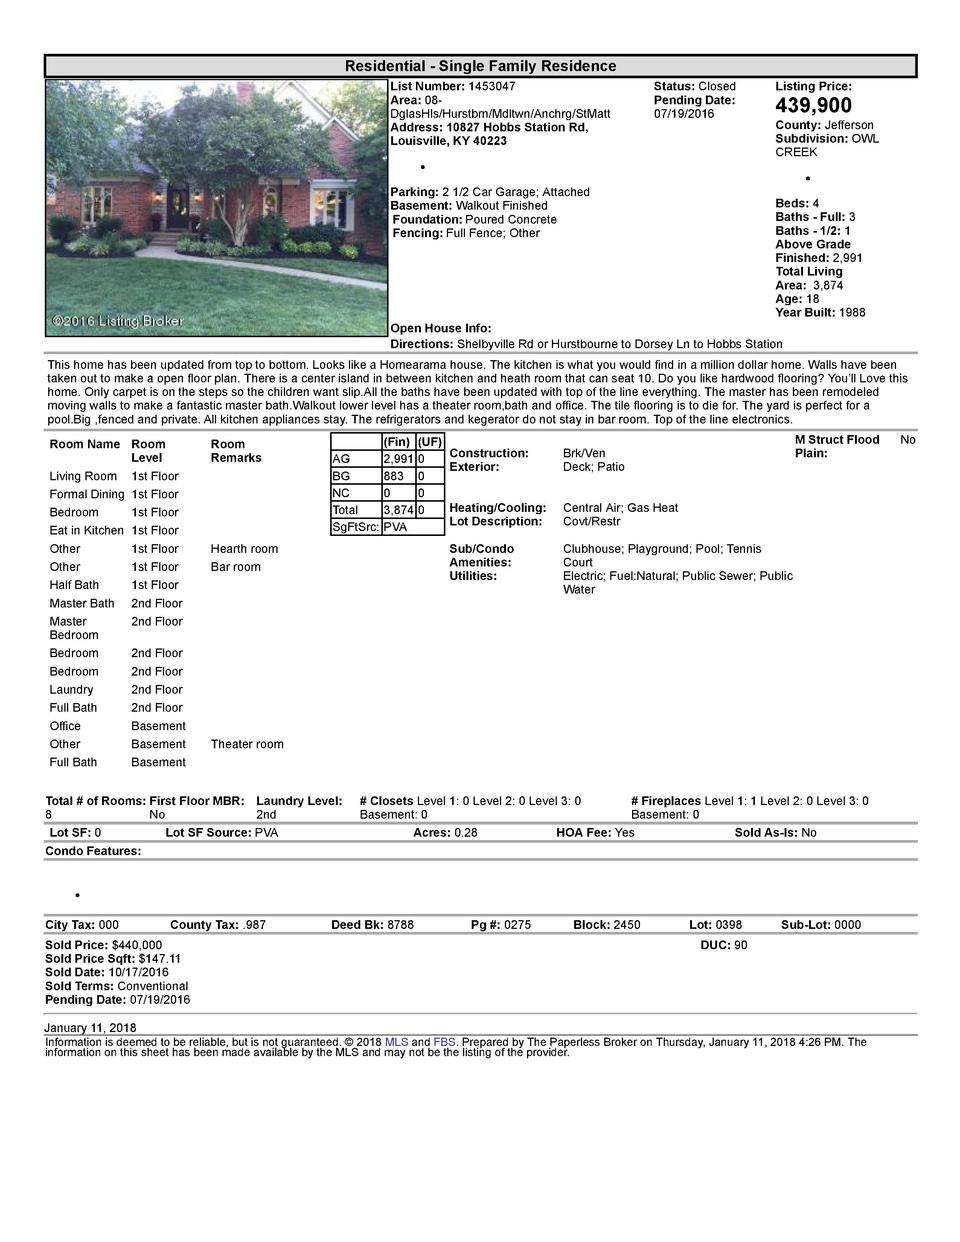 Residential      Single  Family  Residence List  Number   1453047 Area   08   DglasHls Hurstbrn Mdltwn Anchrg StMatt Ad...